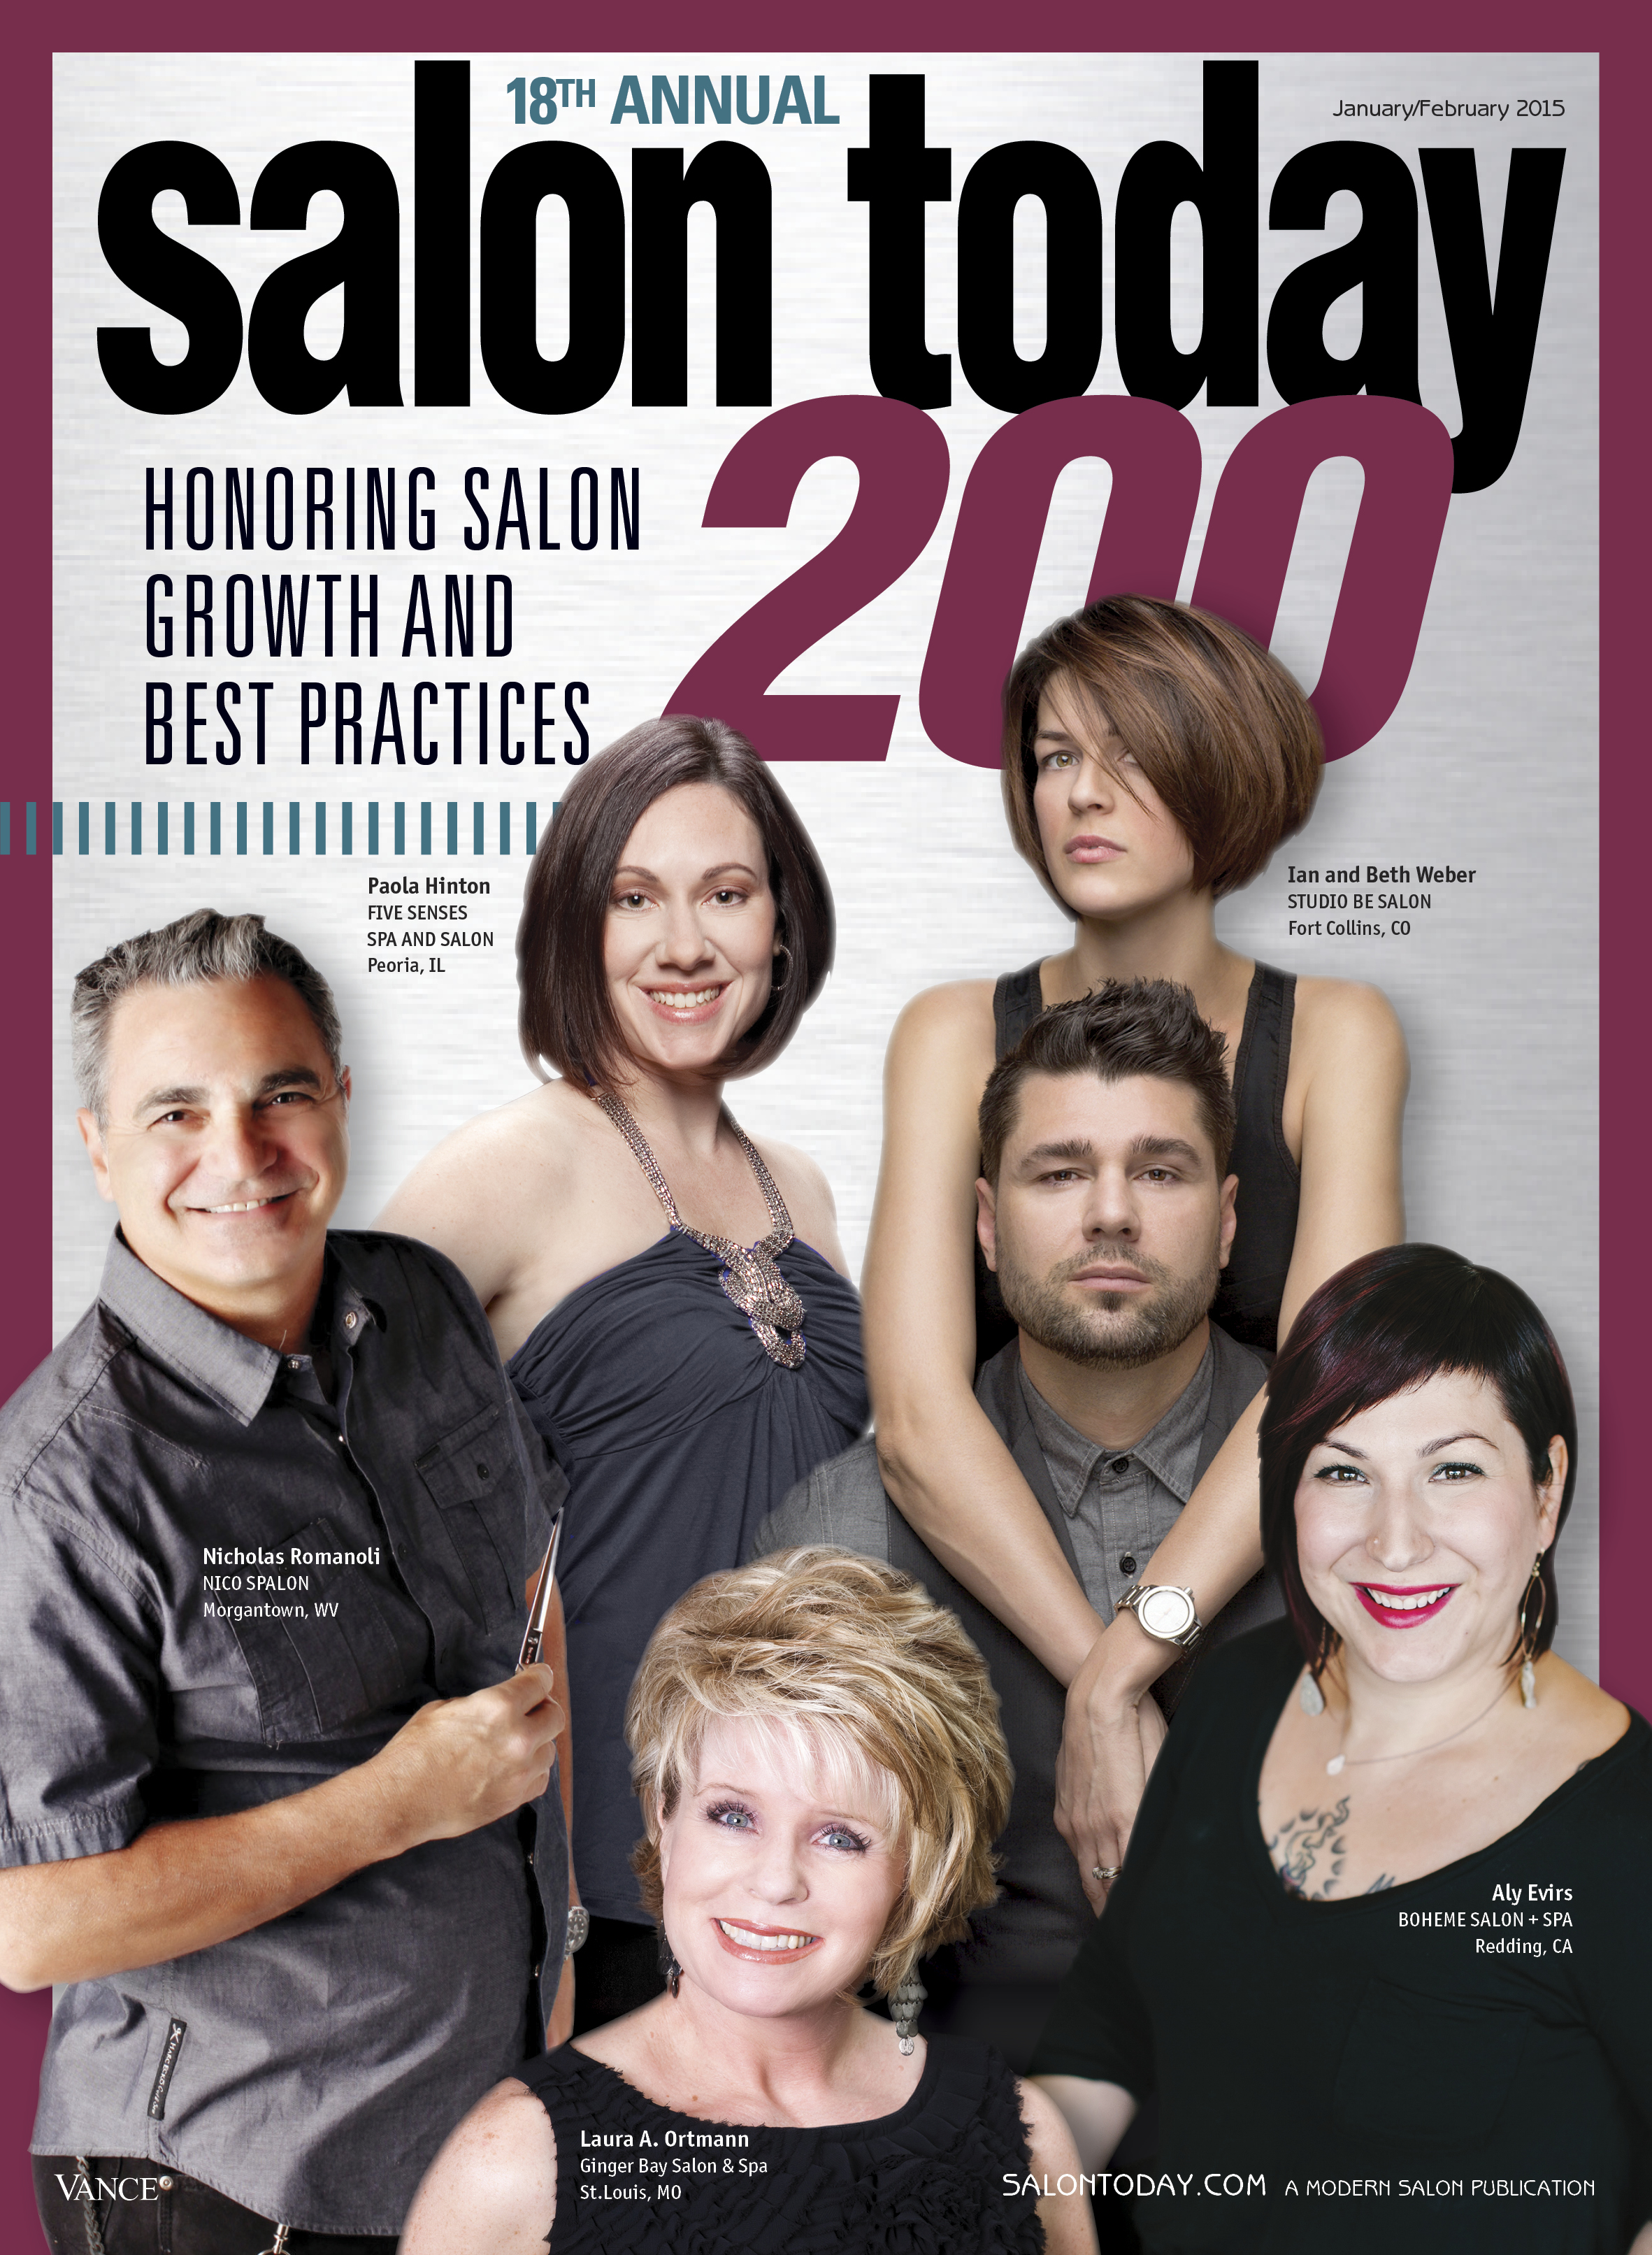 New Salon Today 200 Application Simplifies Entry Process